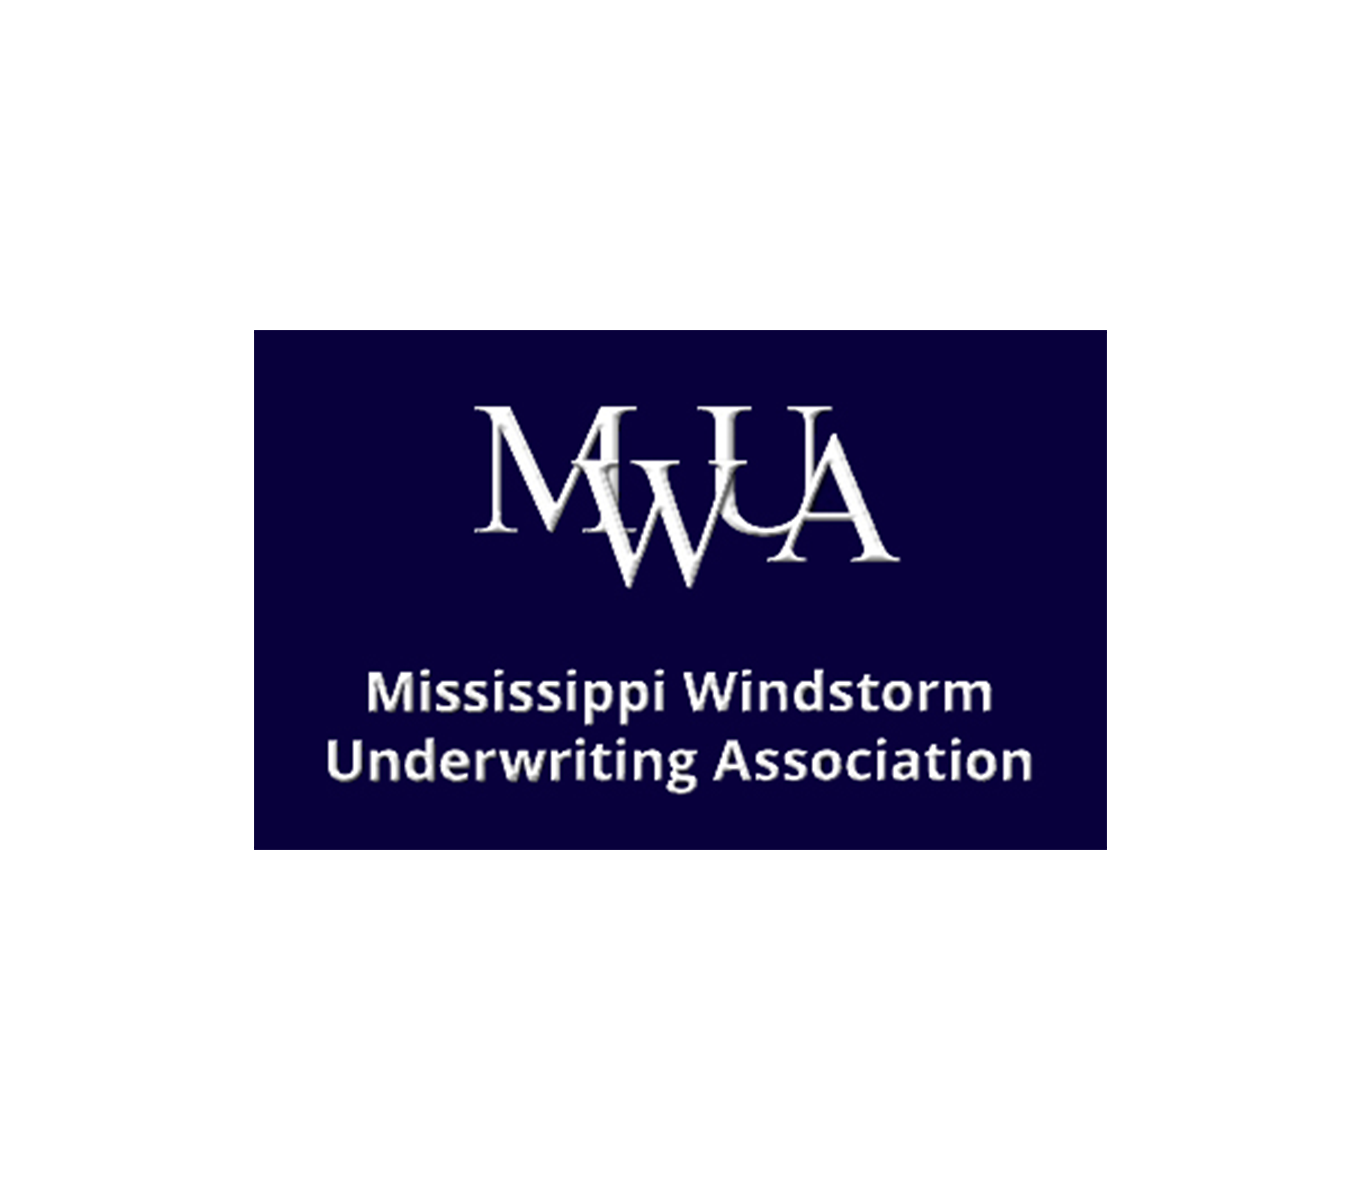 Mississippi Windstorm Underwriting Association Customer Logo